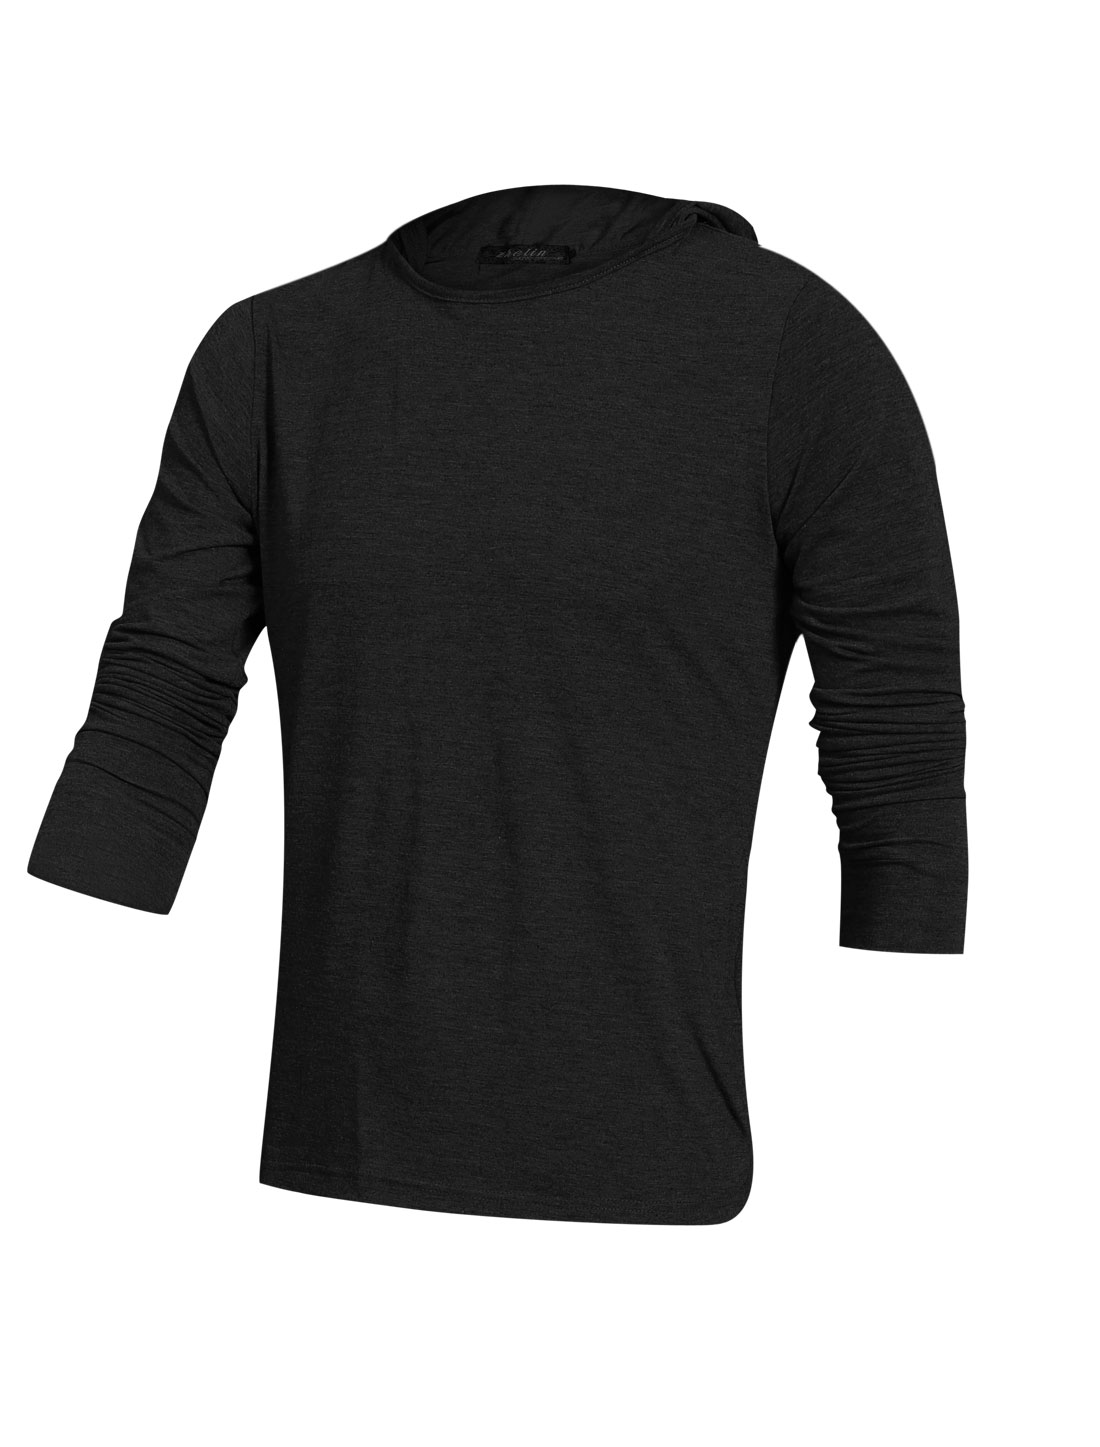 Men Hooded Long Sleeve Leisure Design Pullover Top Black M